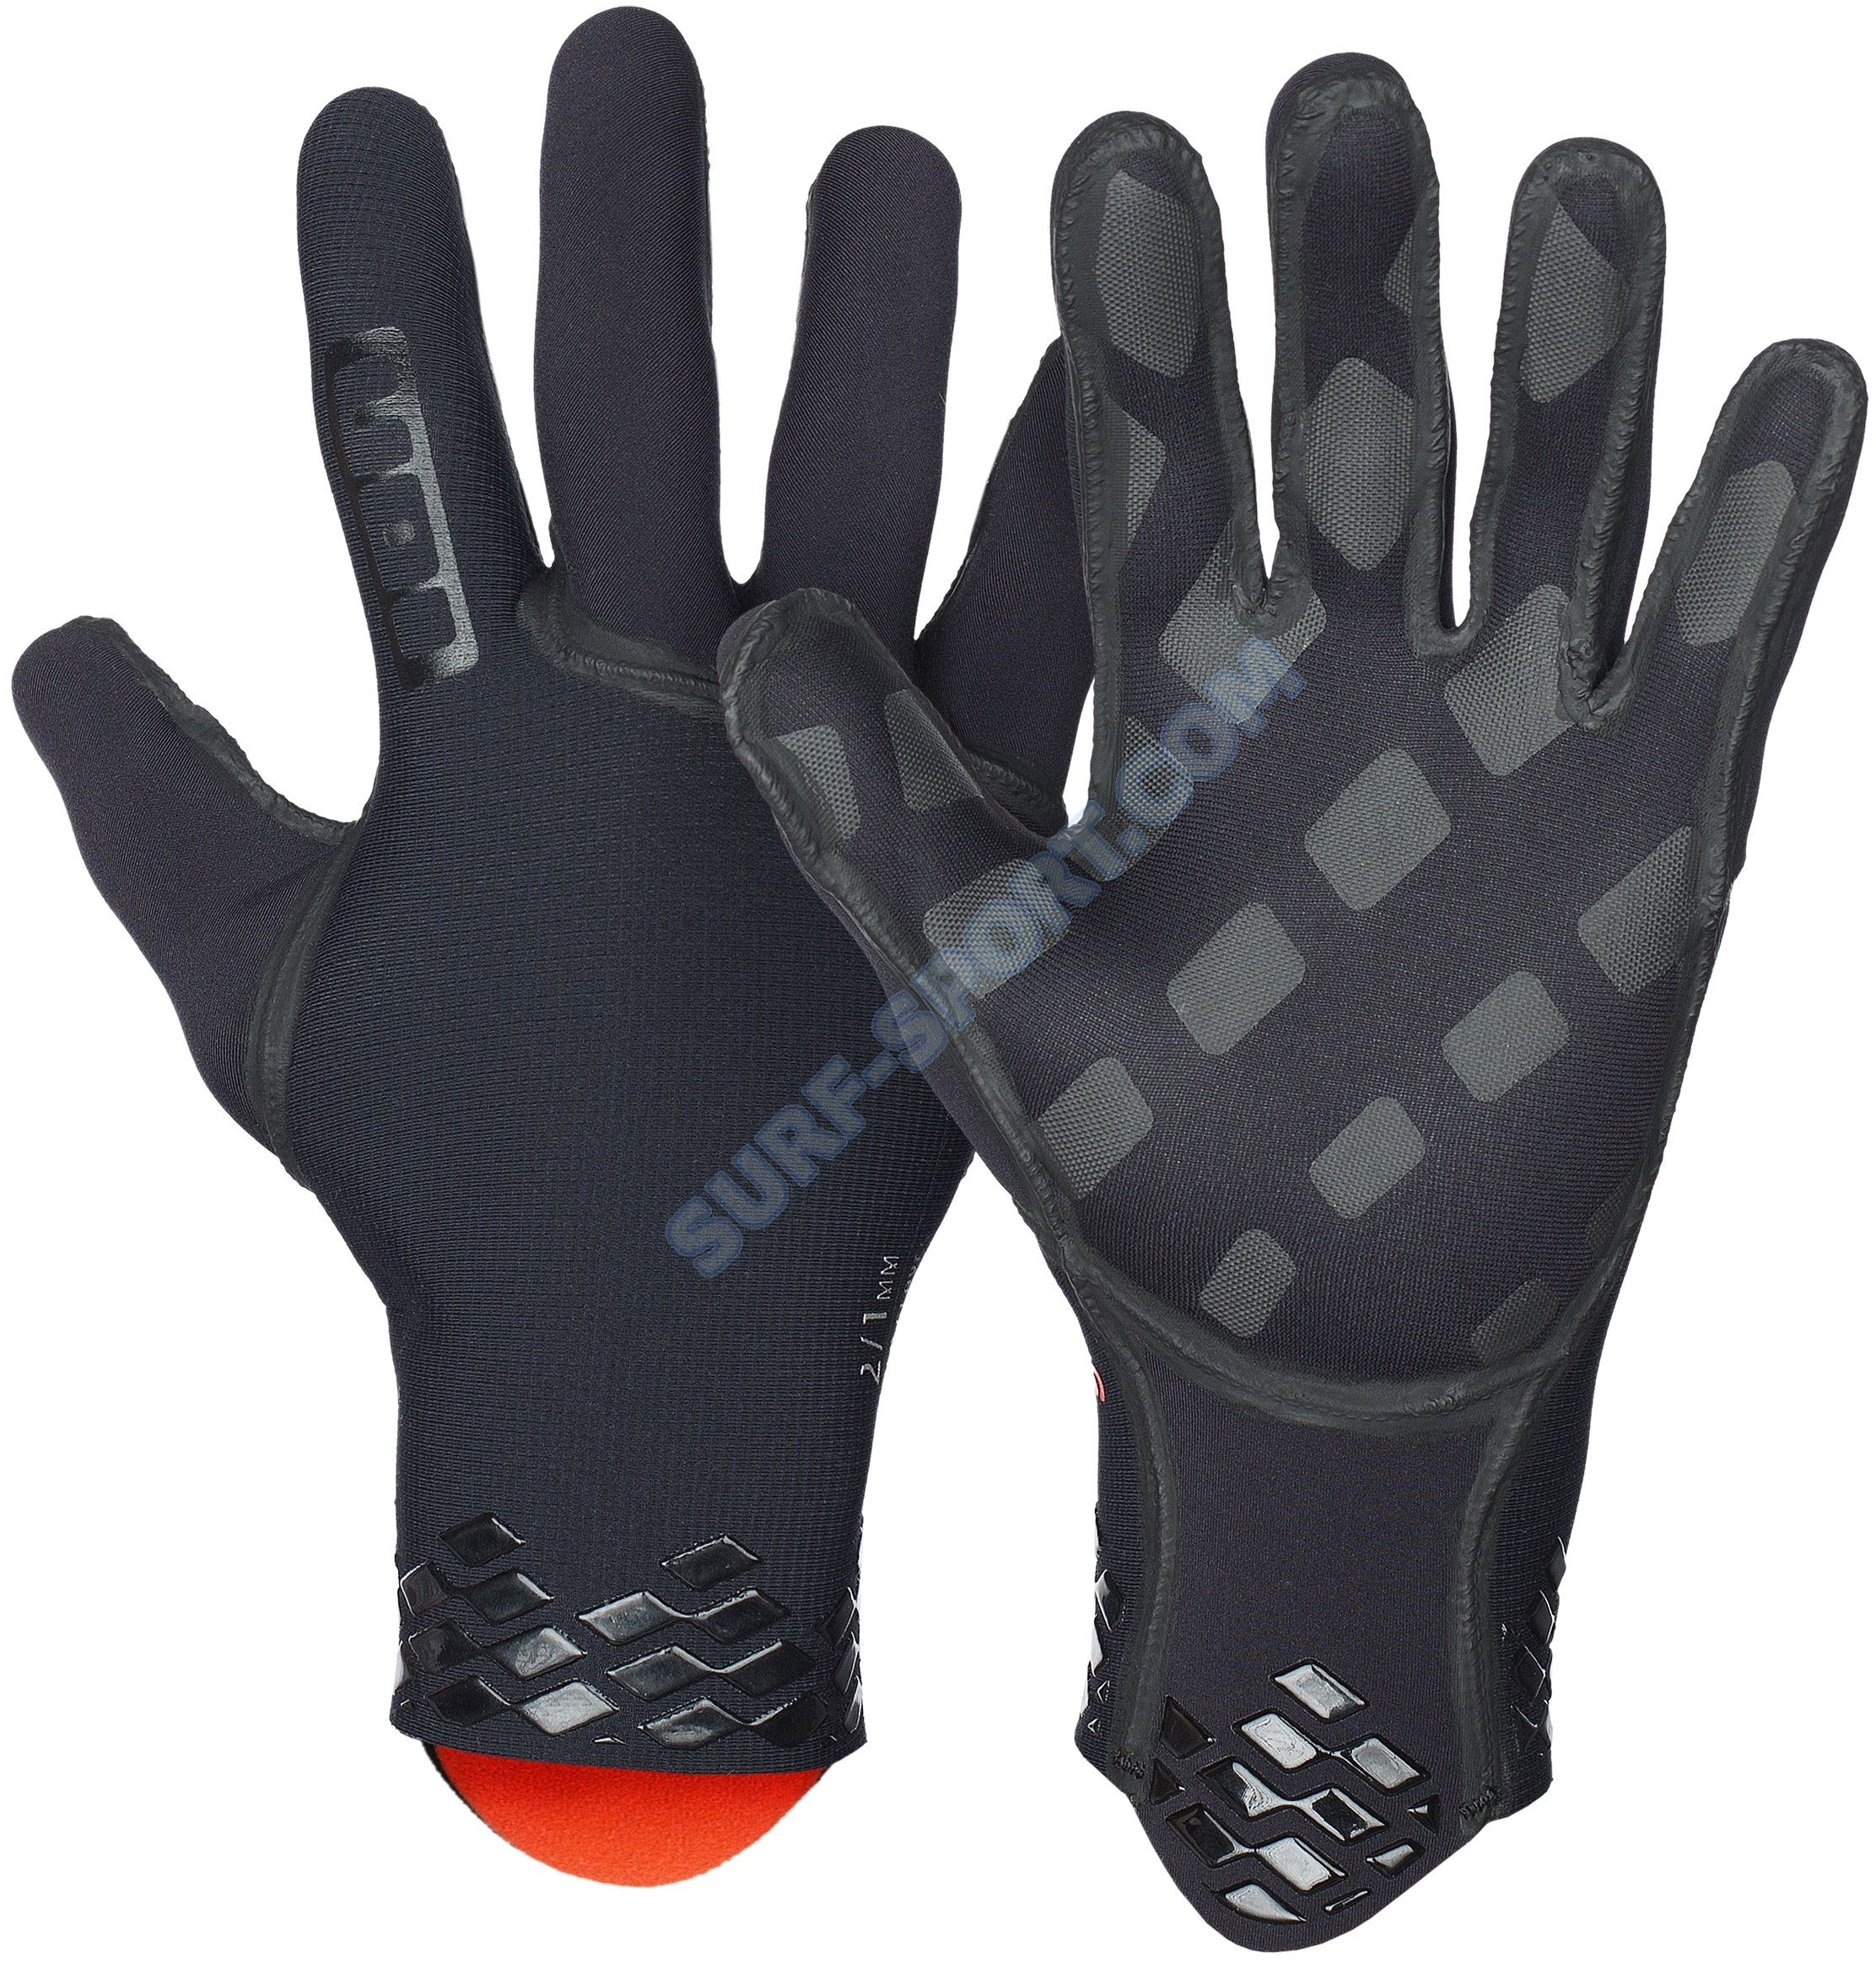 Rekawiczki ION Neo Gloves 2/1 2020 Black